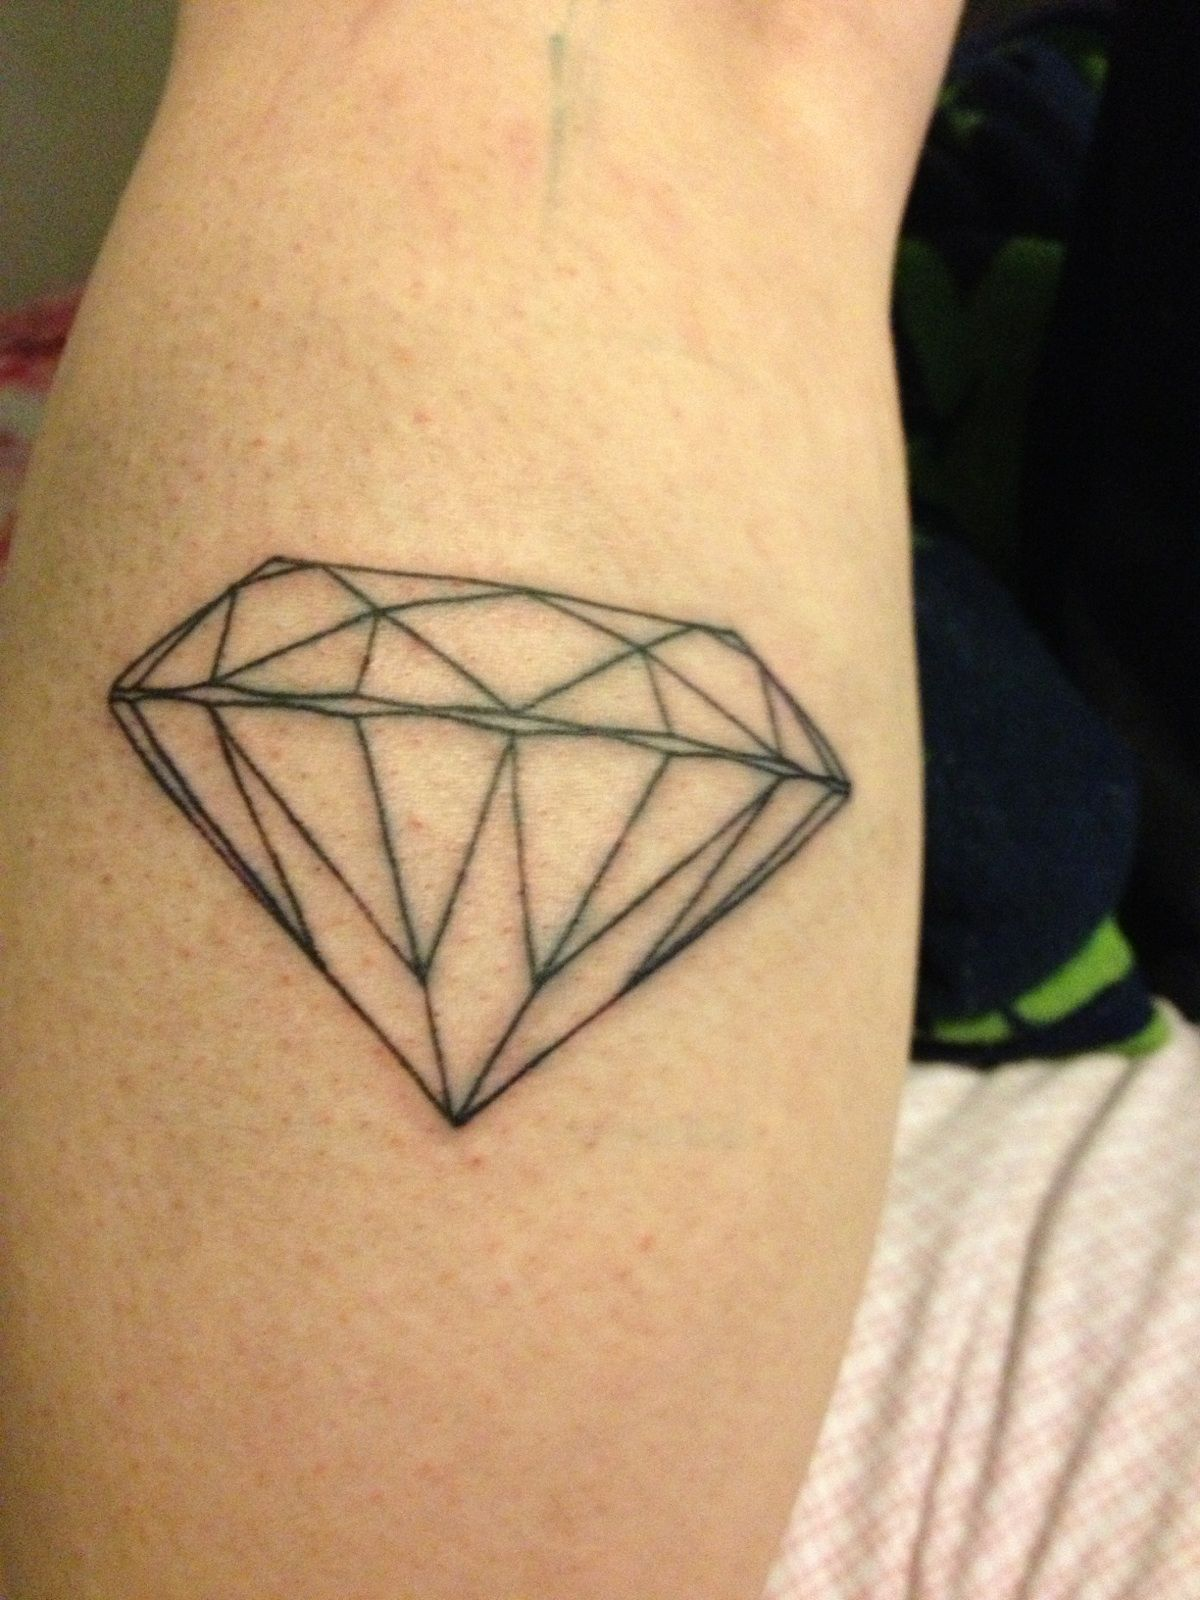 Best Diamond Tattoo Designs Inkdoneright Diamond Tattoo Designs Diamond Tattoos Picture Tattoos